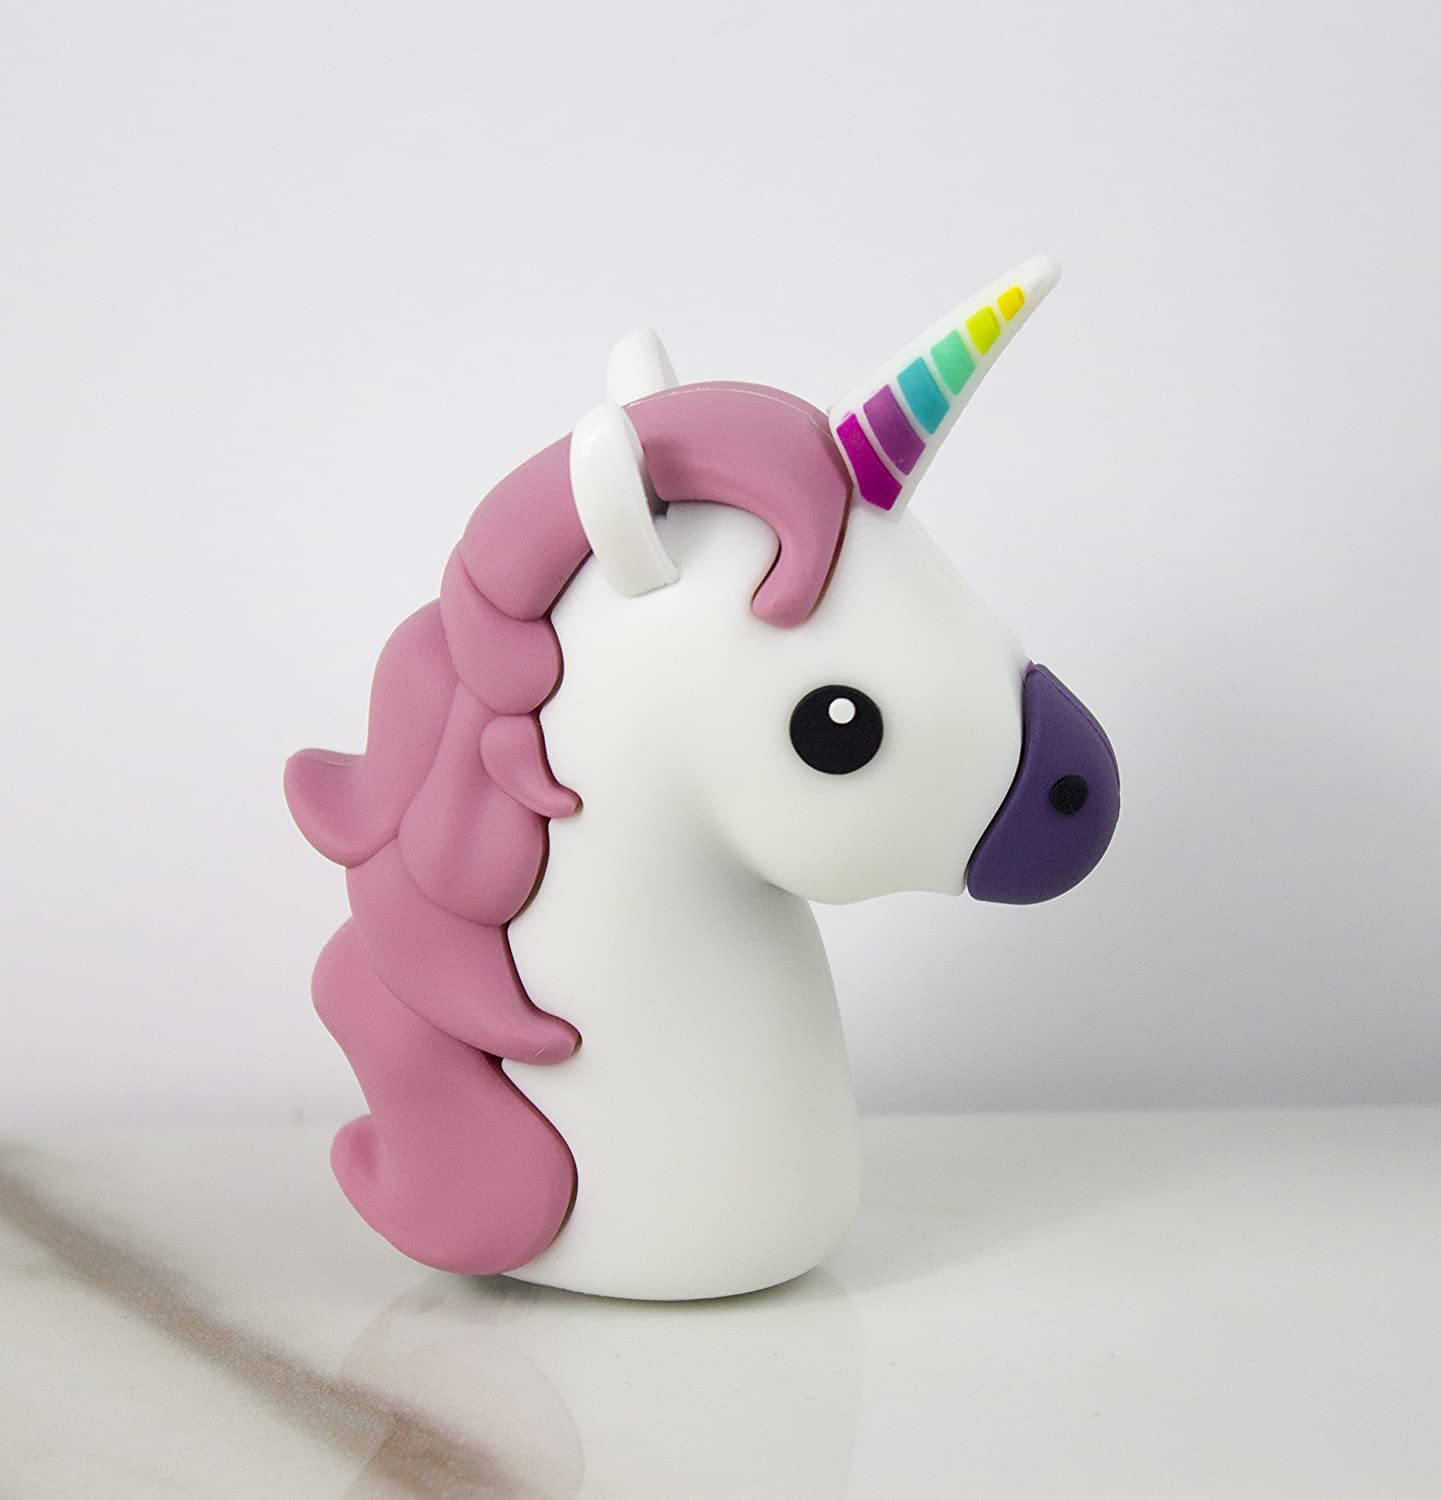 Amazon.com: Unicornio Power Bank varios colores, Rosado